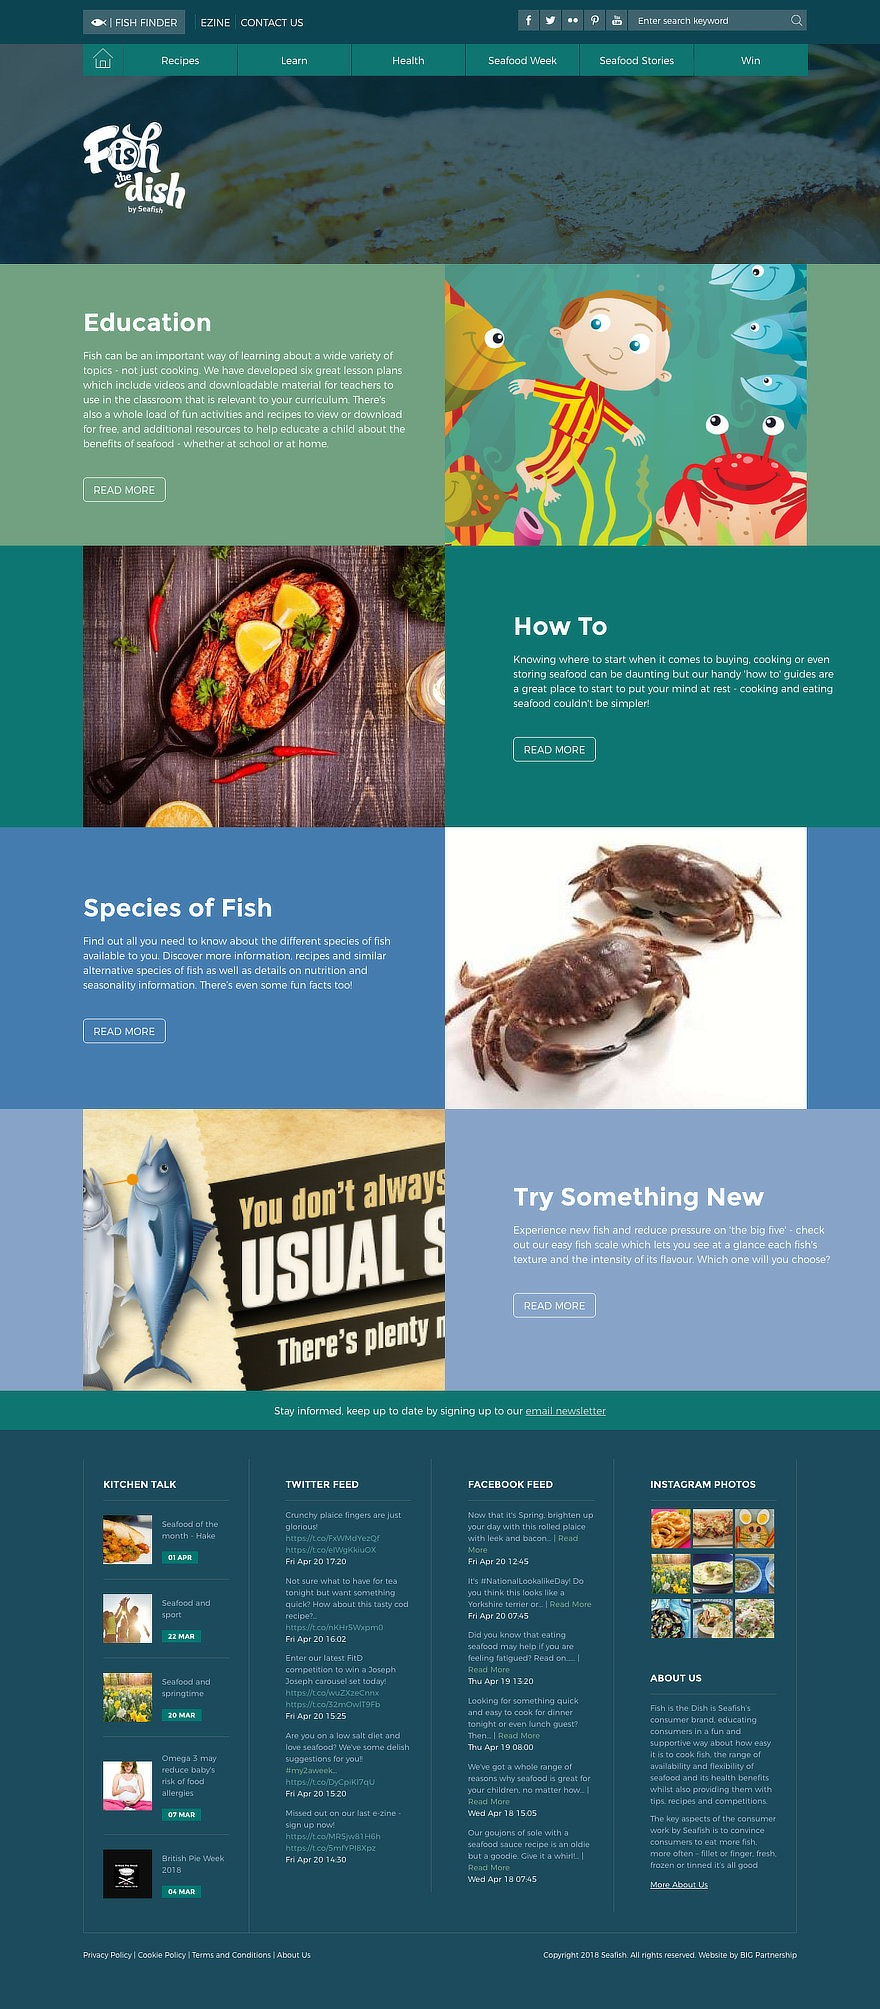 web design for Fish Is The Dish